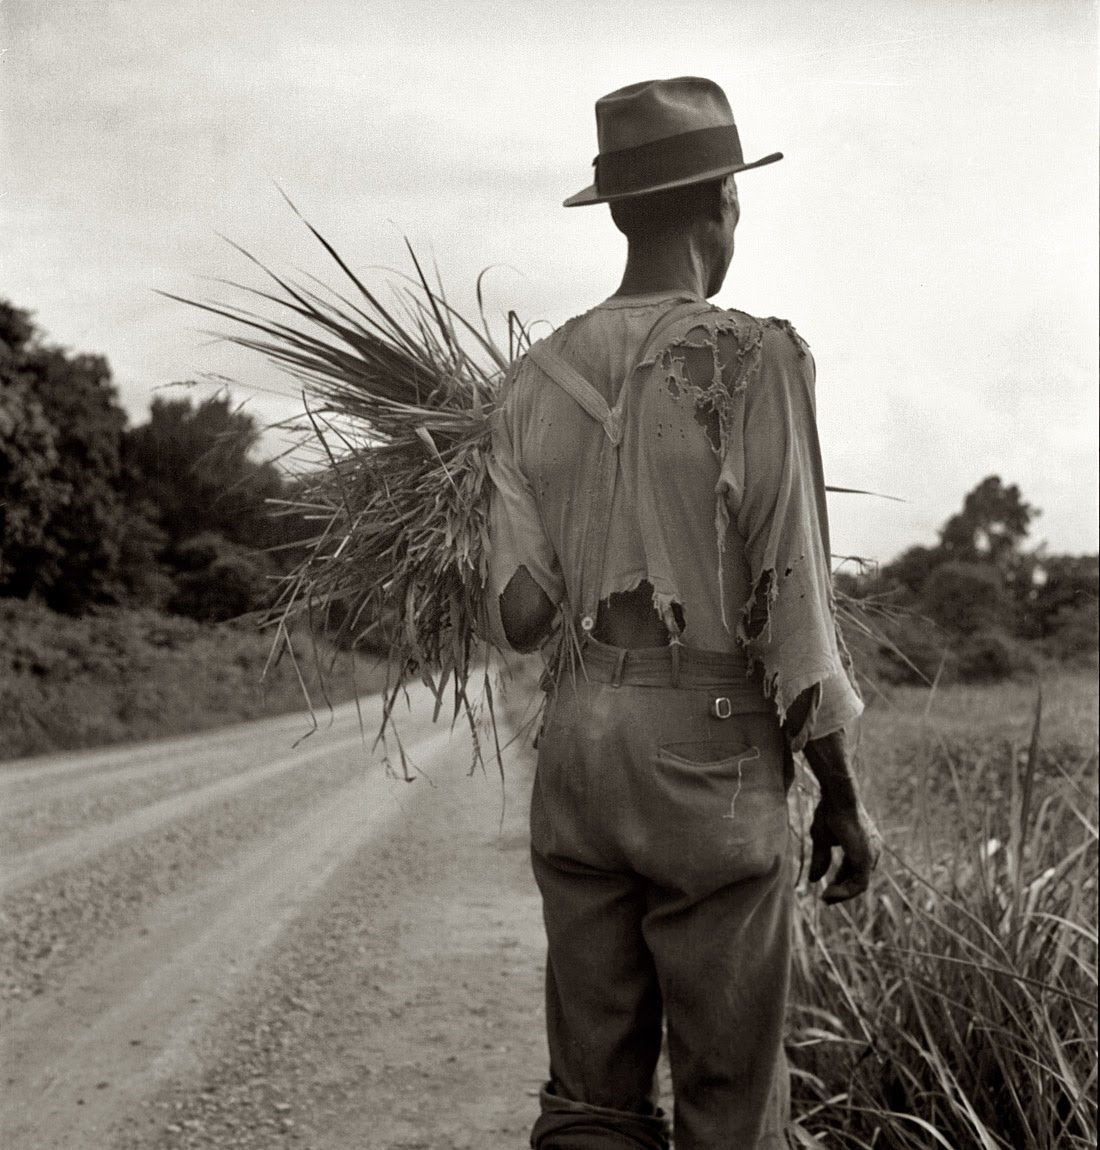 dorothea lange a photographer of a Dorothea lange: a life beyond limits presents us with a portrait of the artist as a woman in her fascinating new biography of photographer dorothea lange.